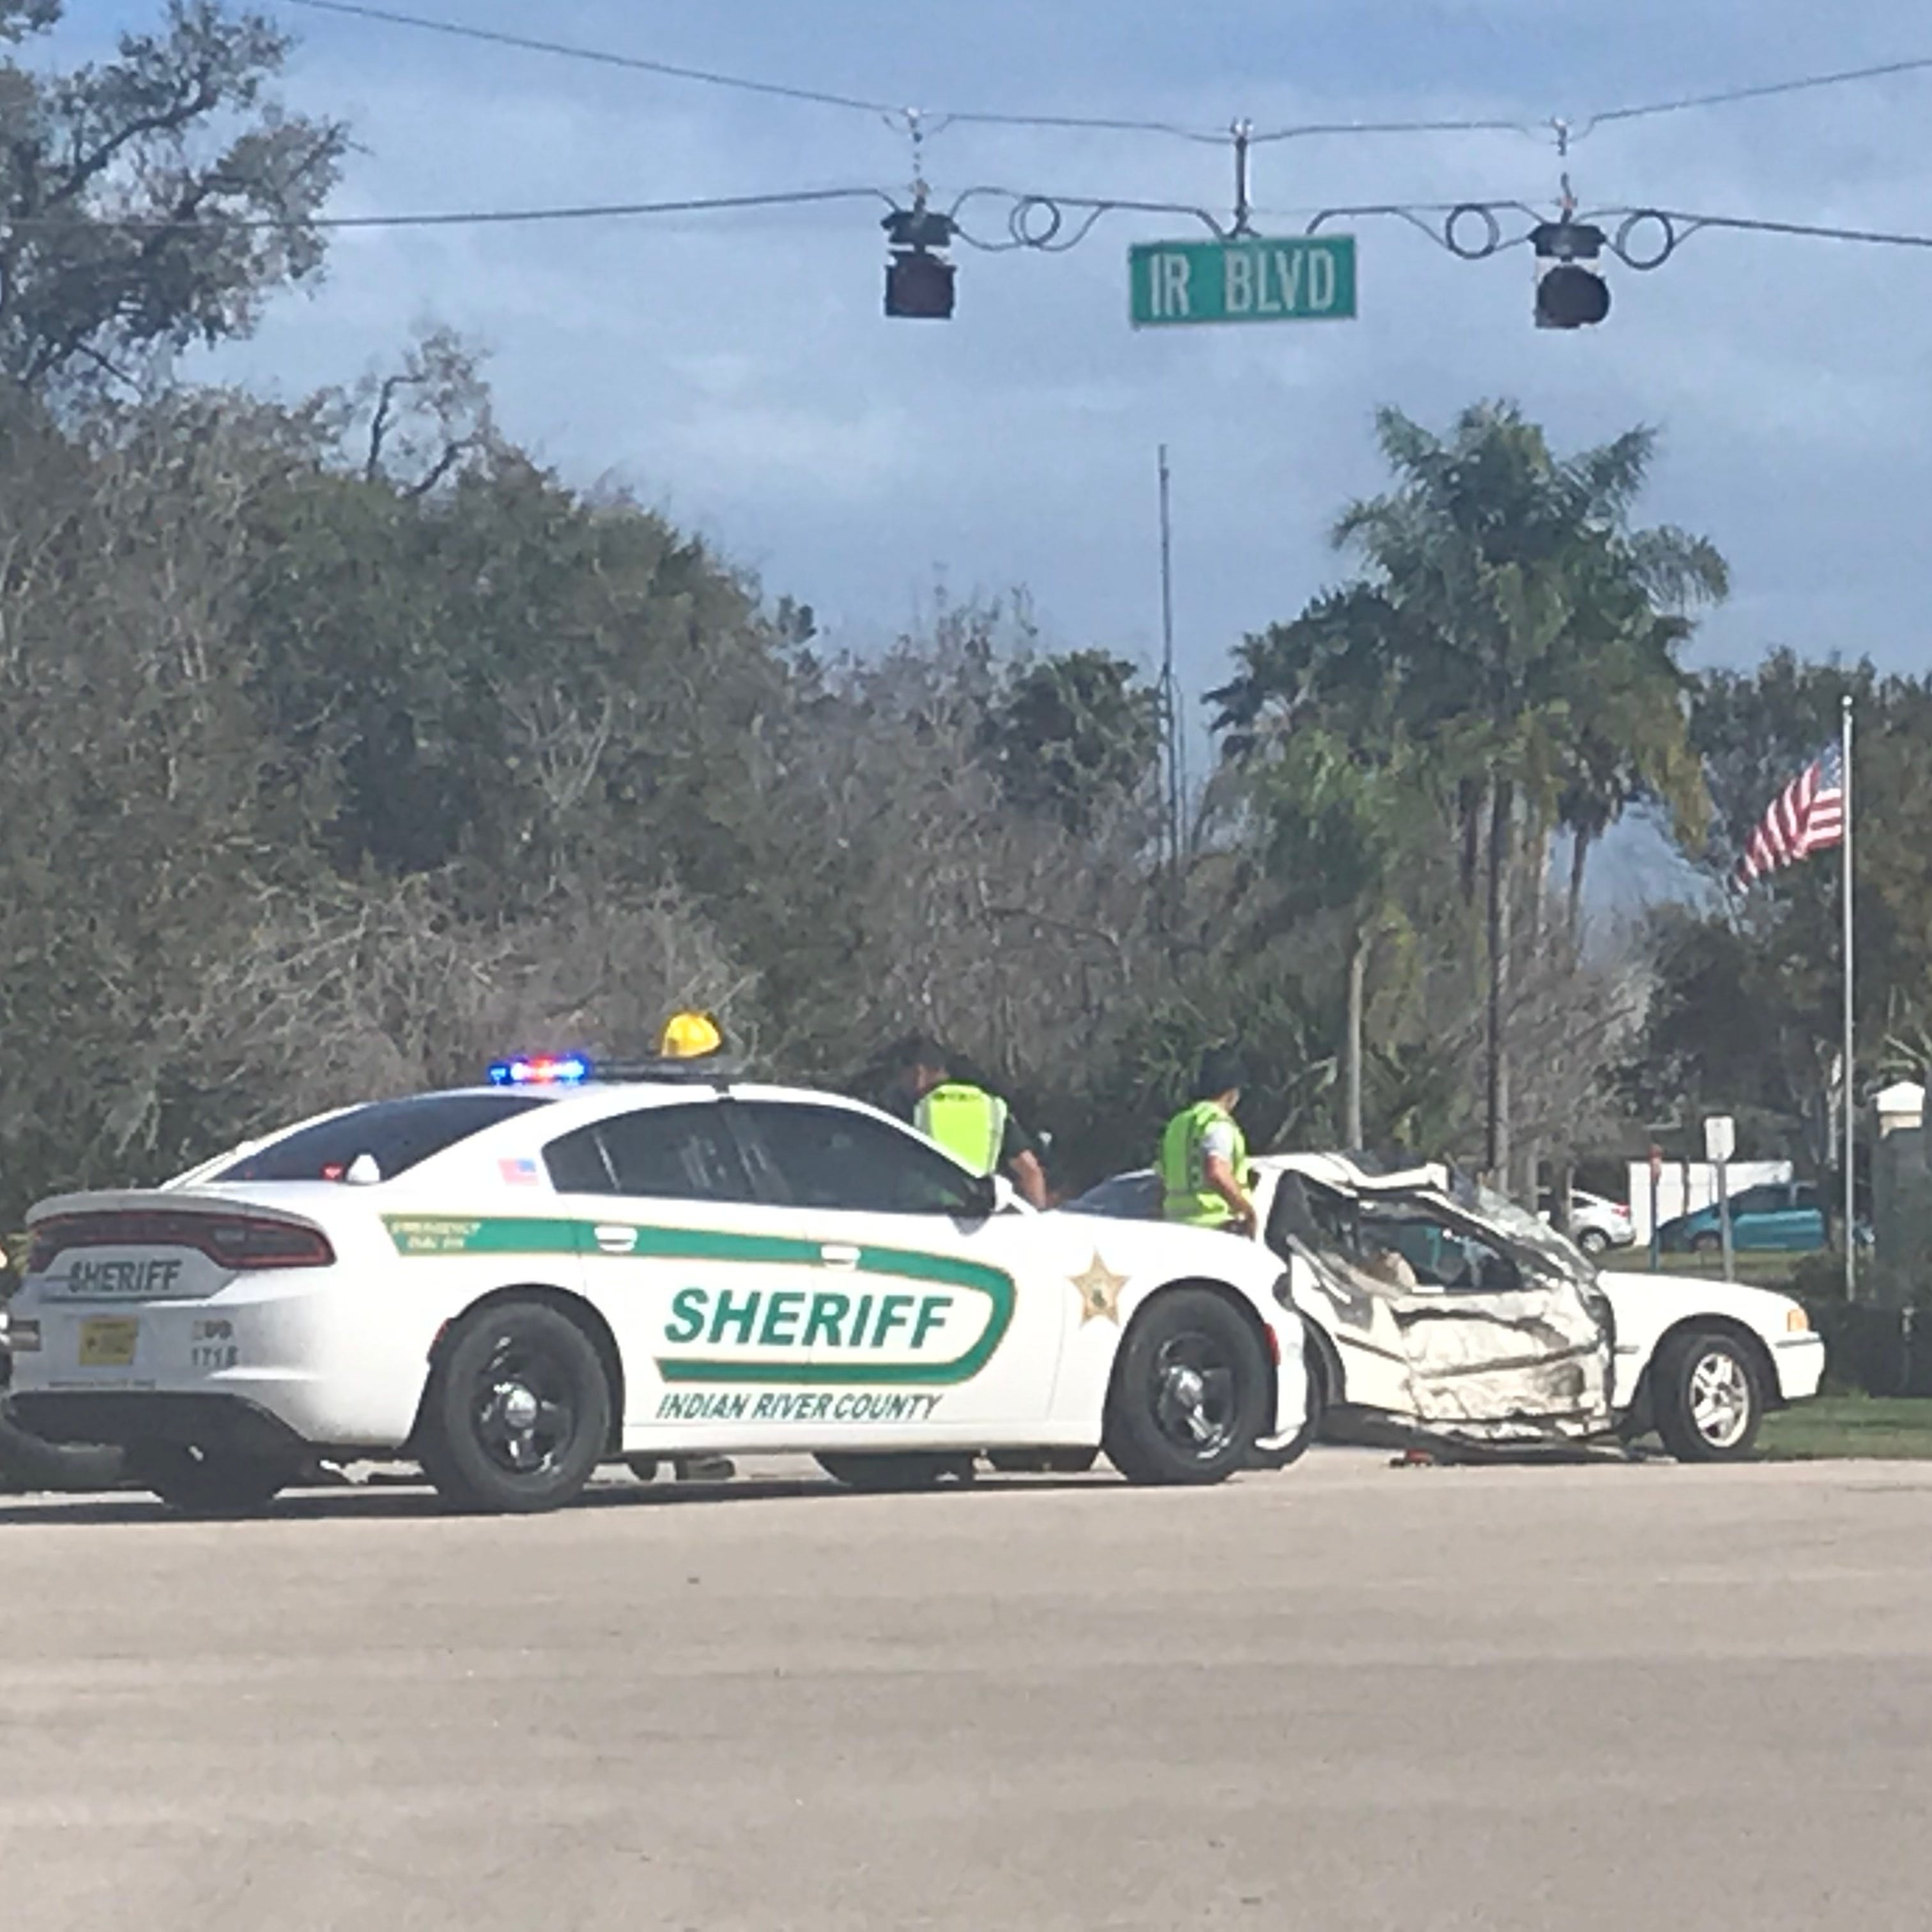 Motorcyclist seriously injured after crash on Indian River Boulevard south of Vero Beach